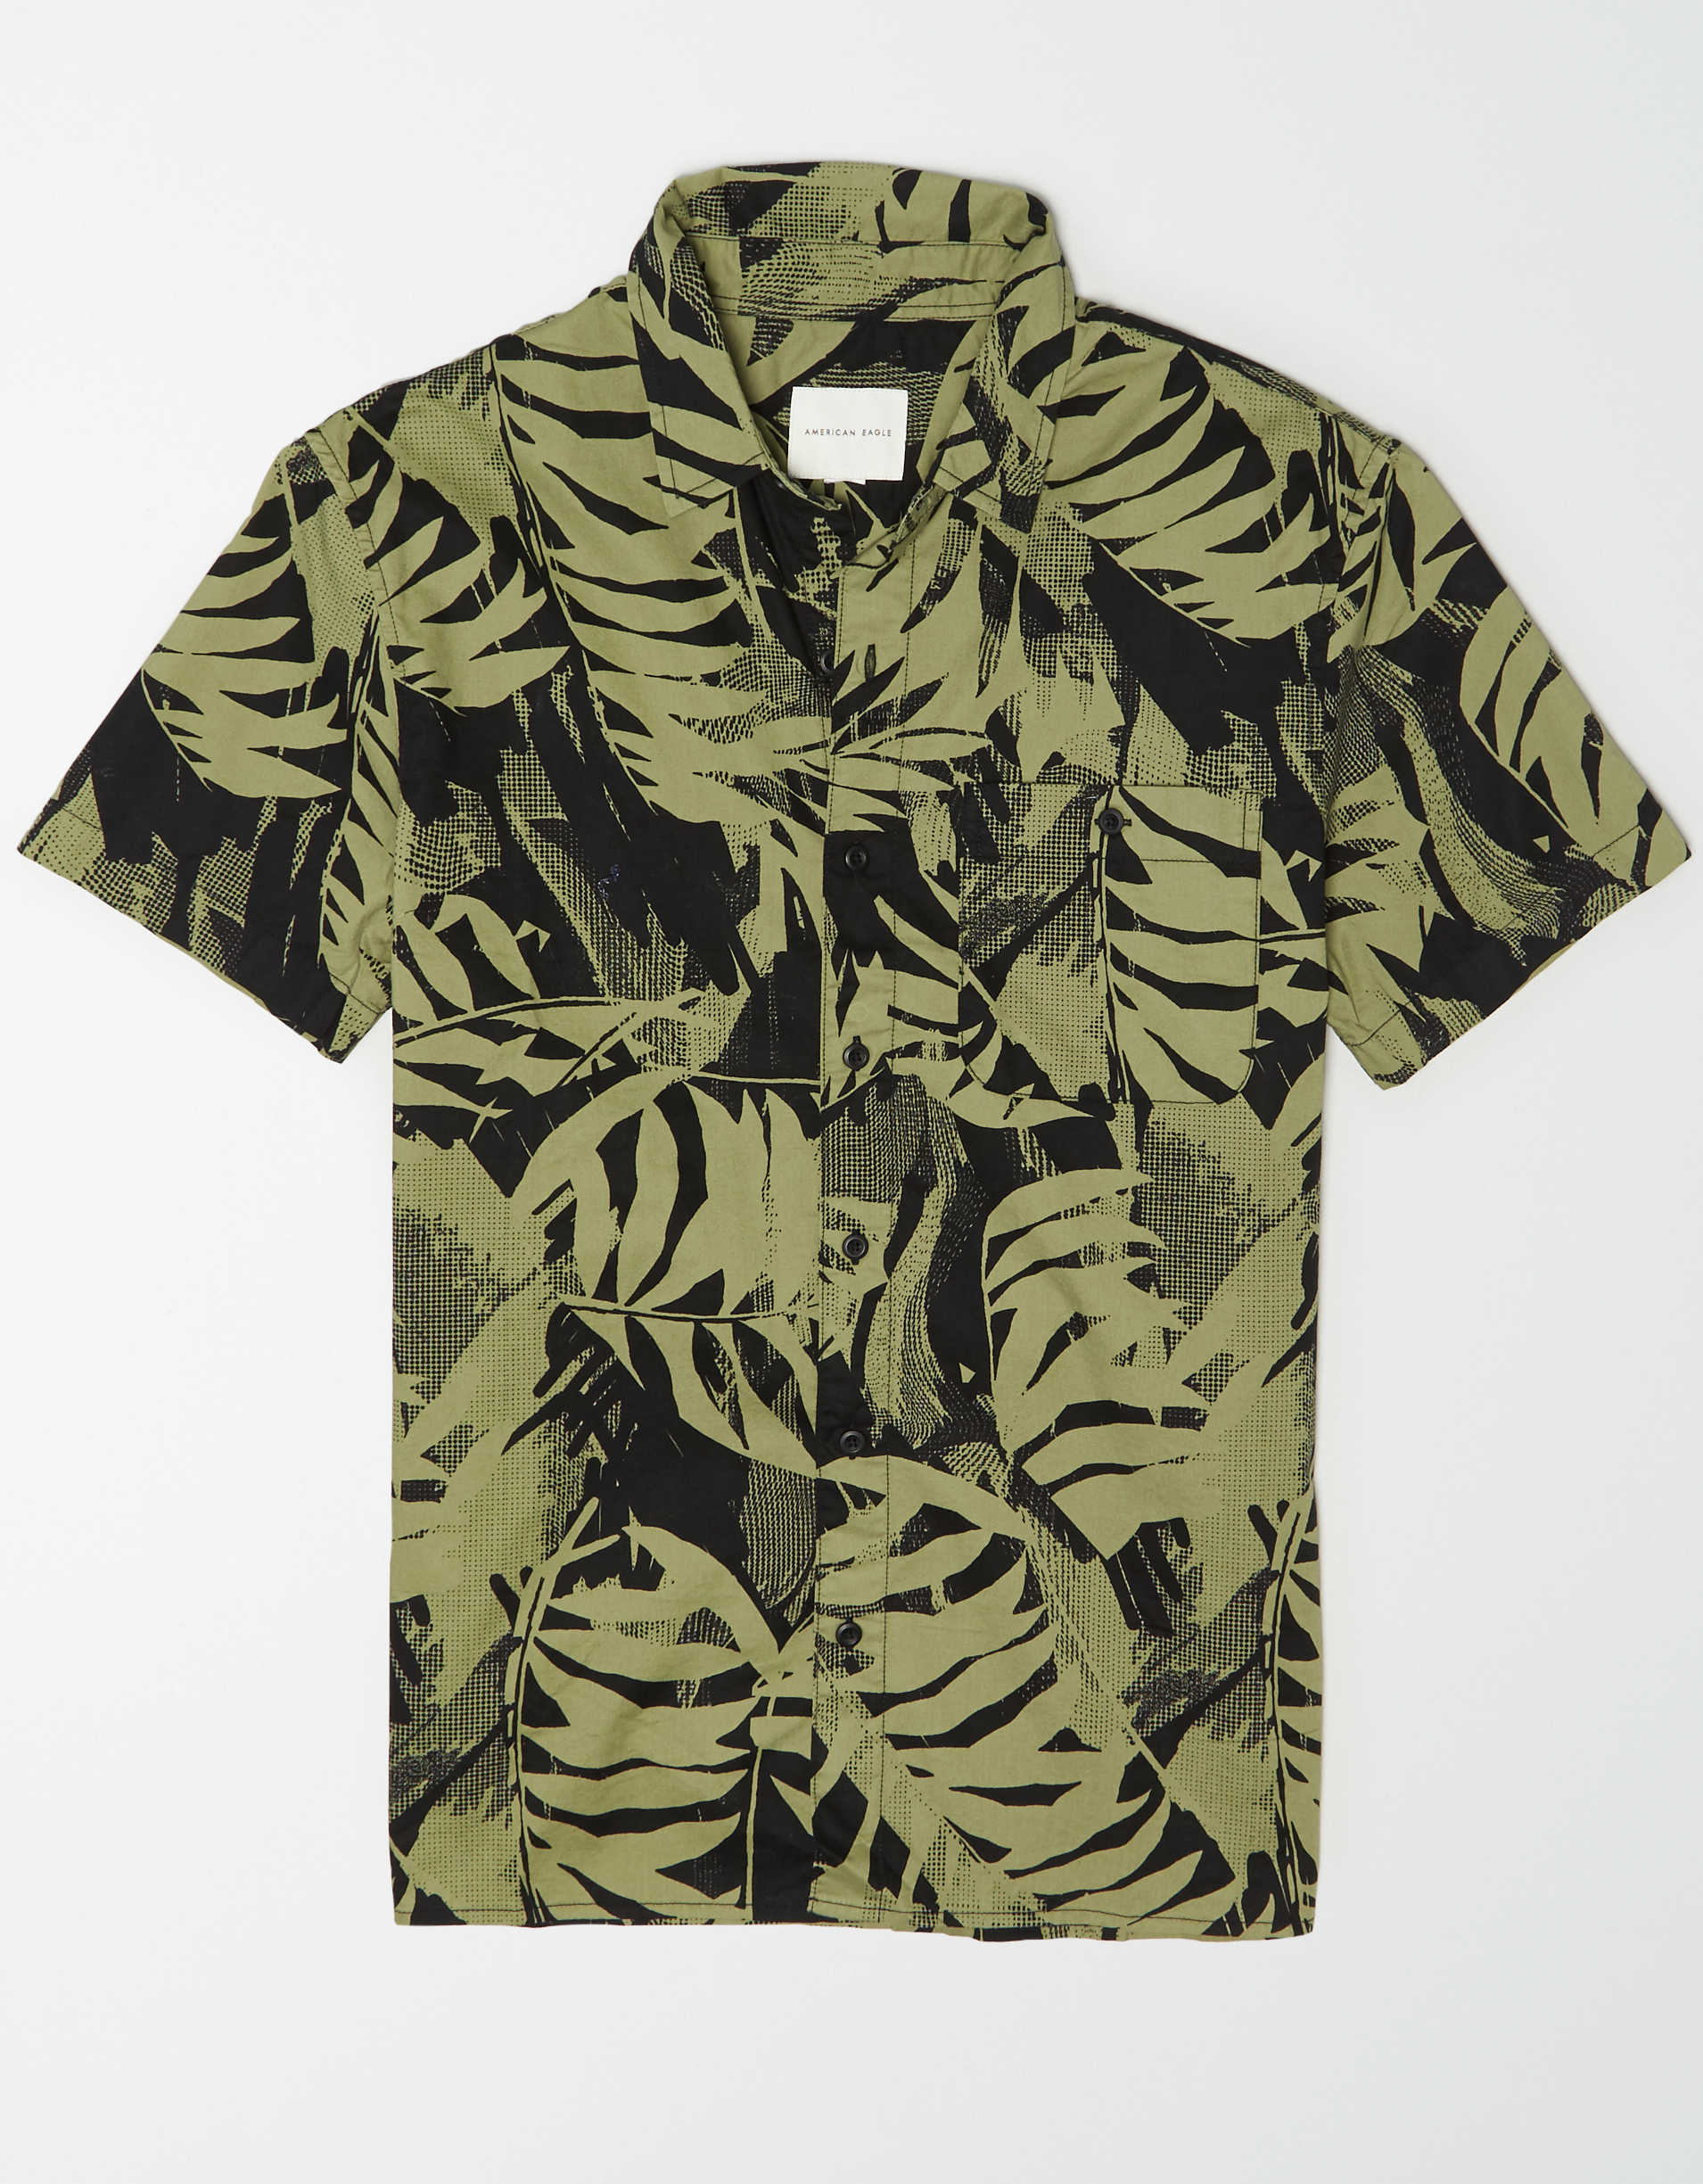 AE Tropical Short Sleeve Button Up Shirt